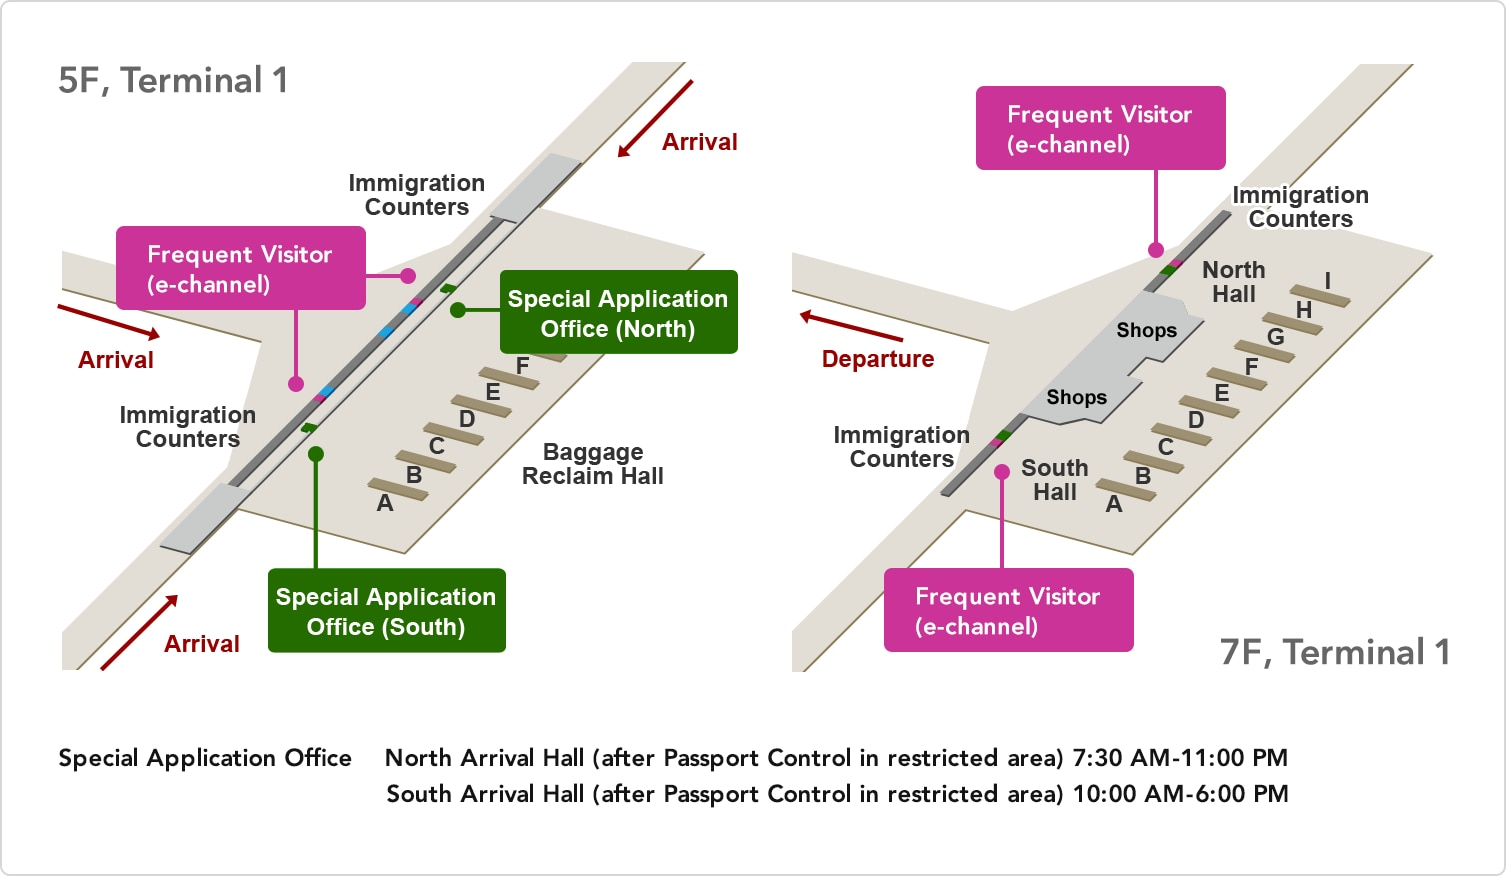 Frequent Visitor e-channels are on the north and south sides of both 5F and 7F inside terminal 1. On 5F, they are near the special application offices inside the arrival halls on both the north and south sides. On 7F, one is inside the departure hall on the north side, and the other is near the immigration counters in the south hall on the south side. Special application offices are on the north and south sides near the baggage reclaim hall on 5F. Special application office: North arrival hall (after passport control in restricted area): 7:30 AM - 11:00 PM; south arrival hall (after passport control in restricted area): 10:00 AM - 6:00 PM